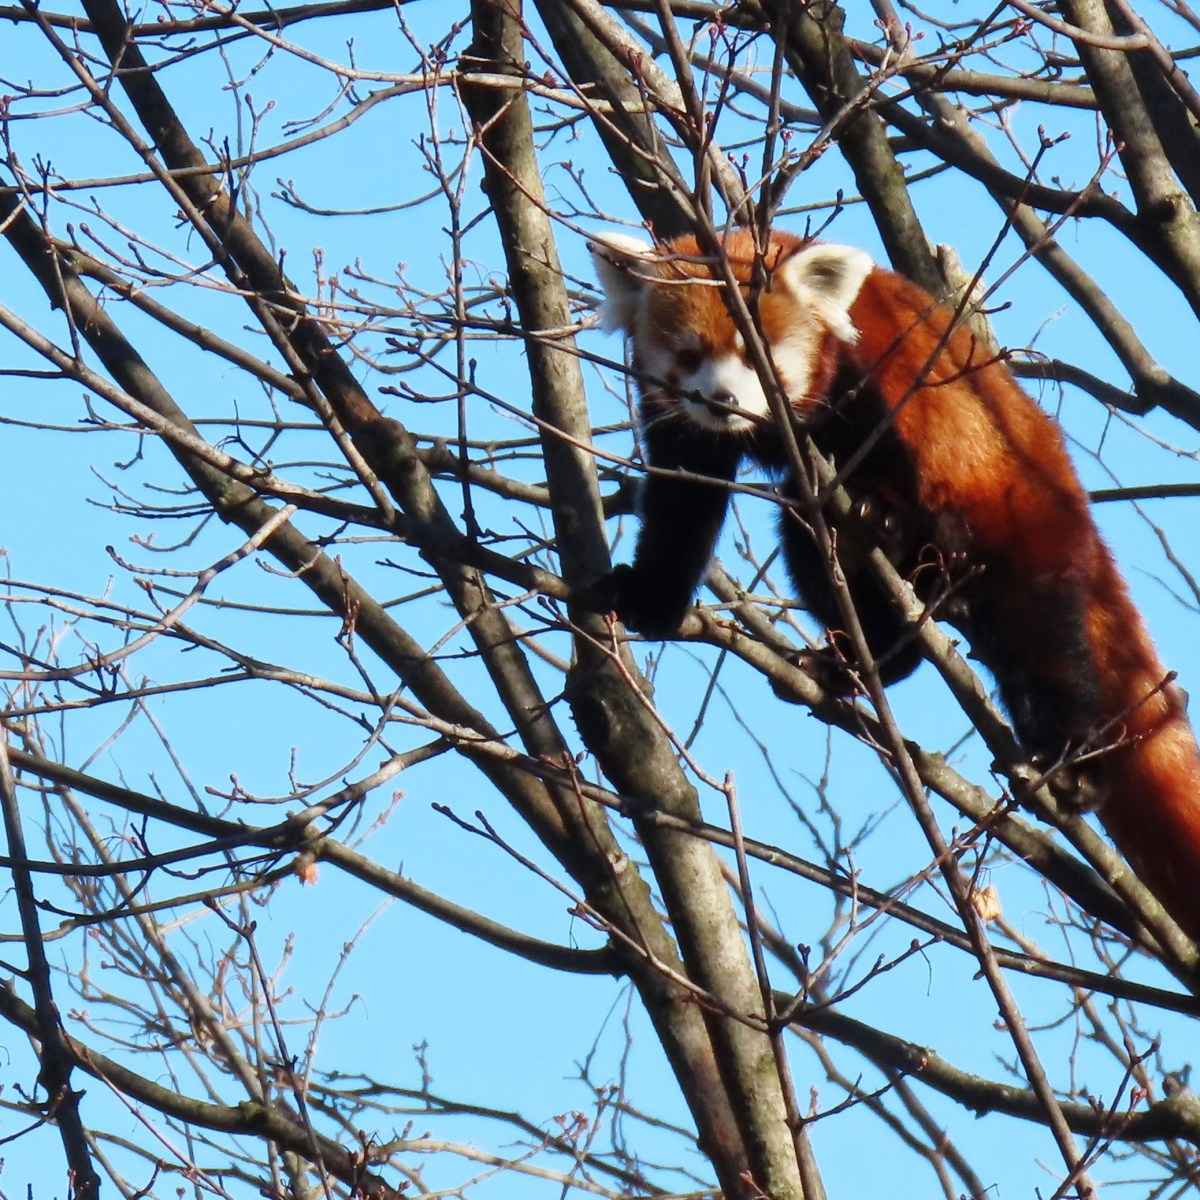 A red panda looks down from its perch in bare tree branches